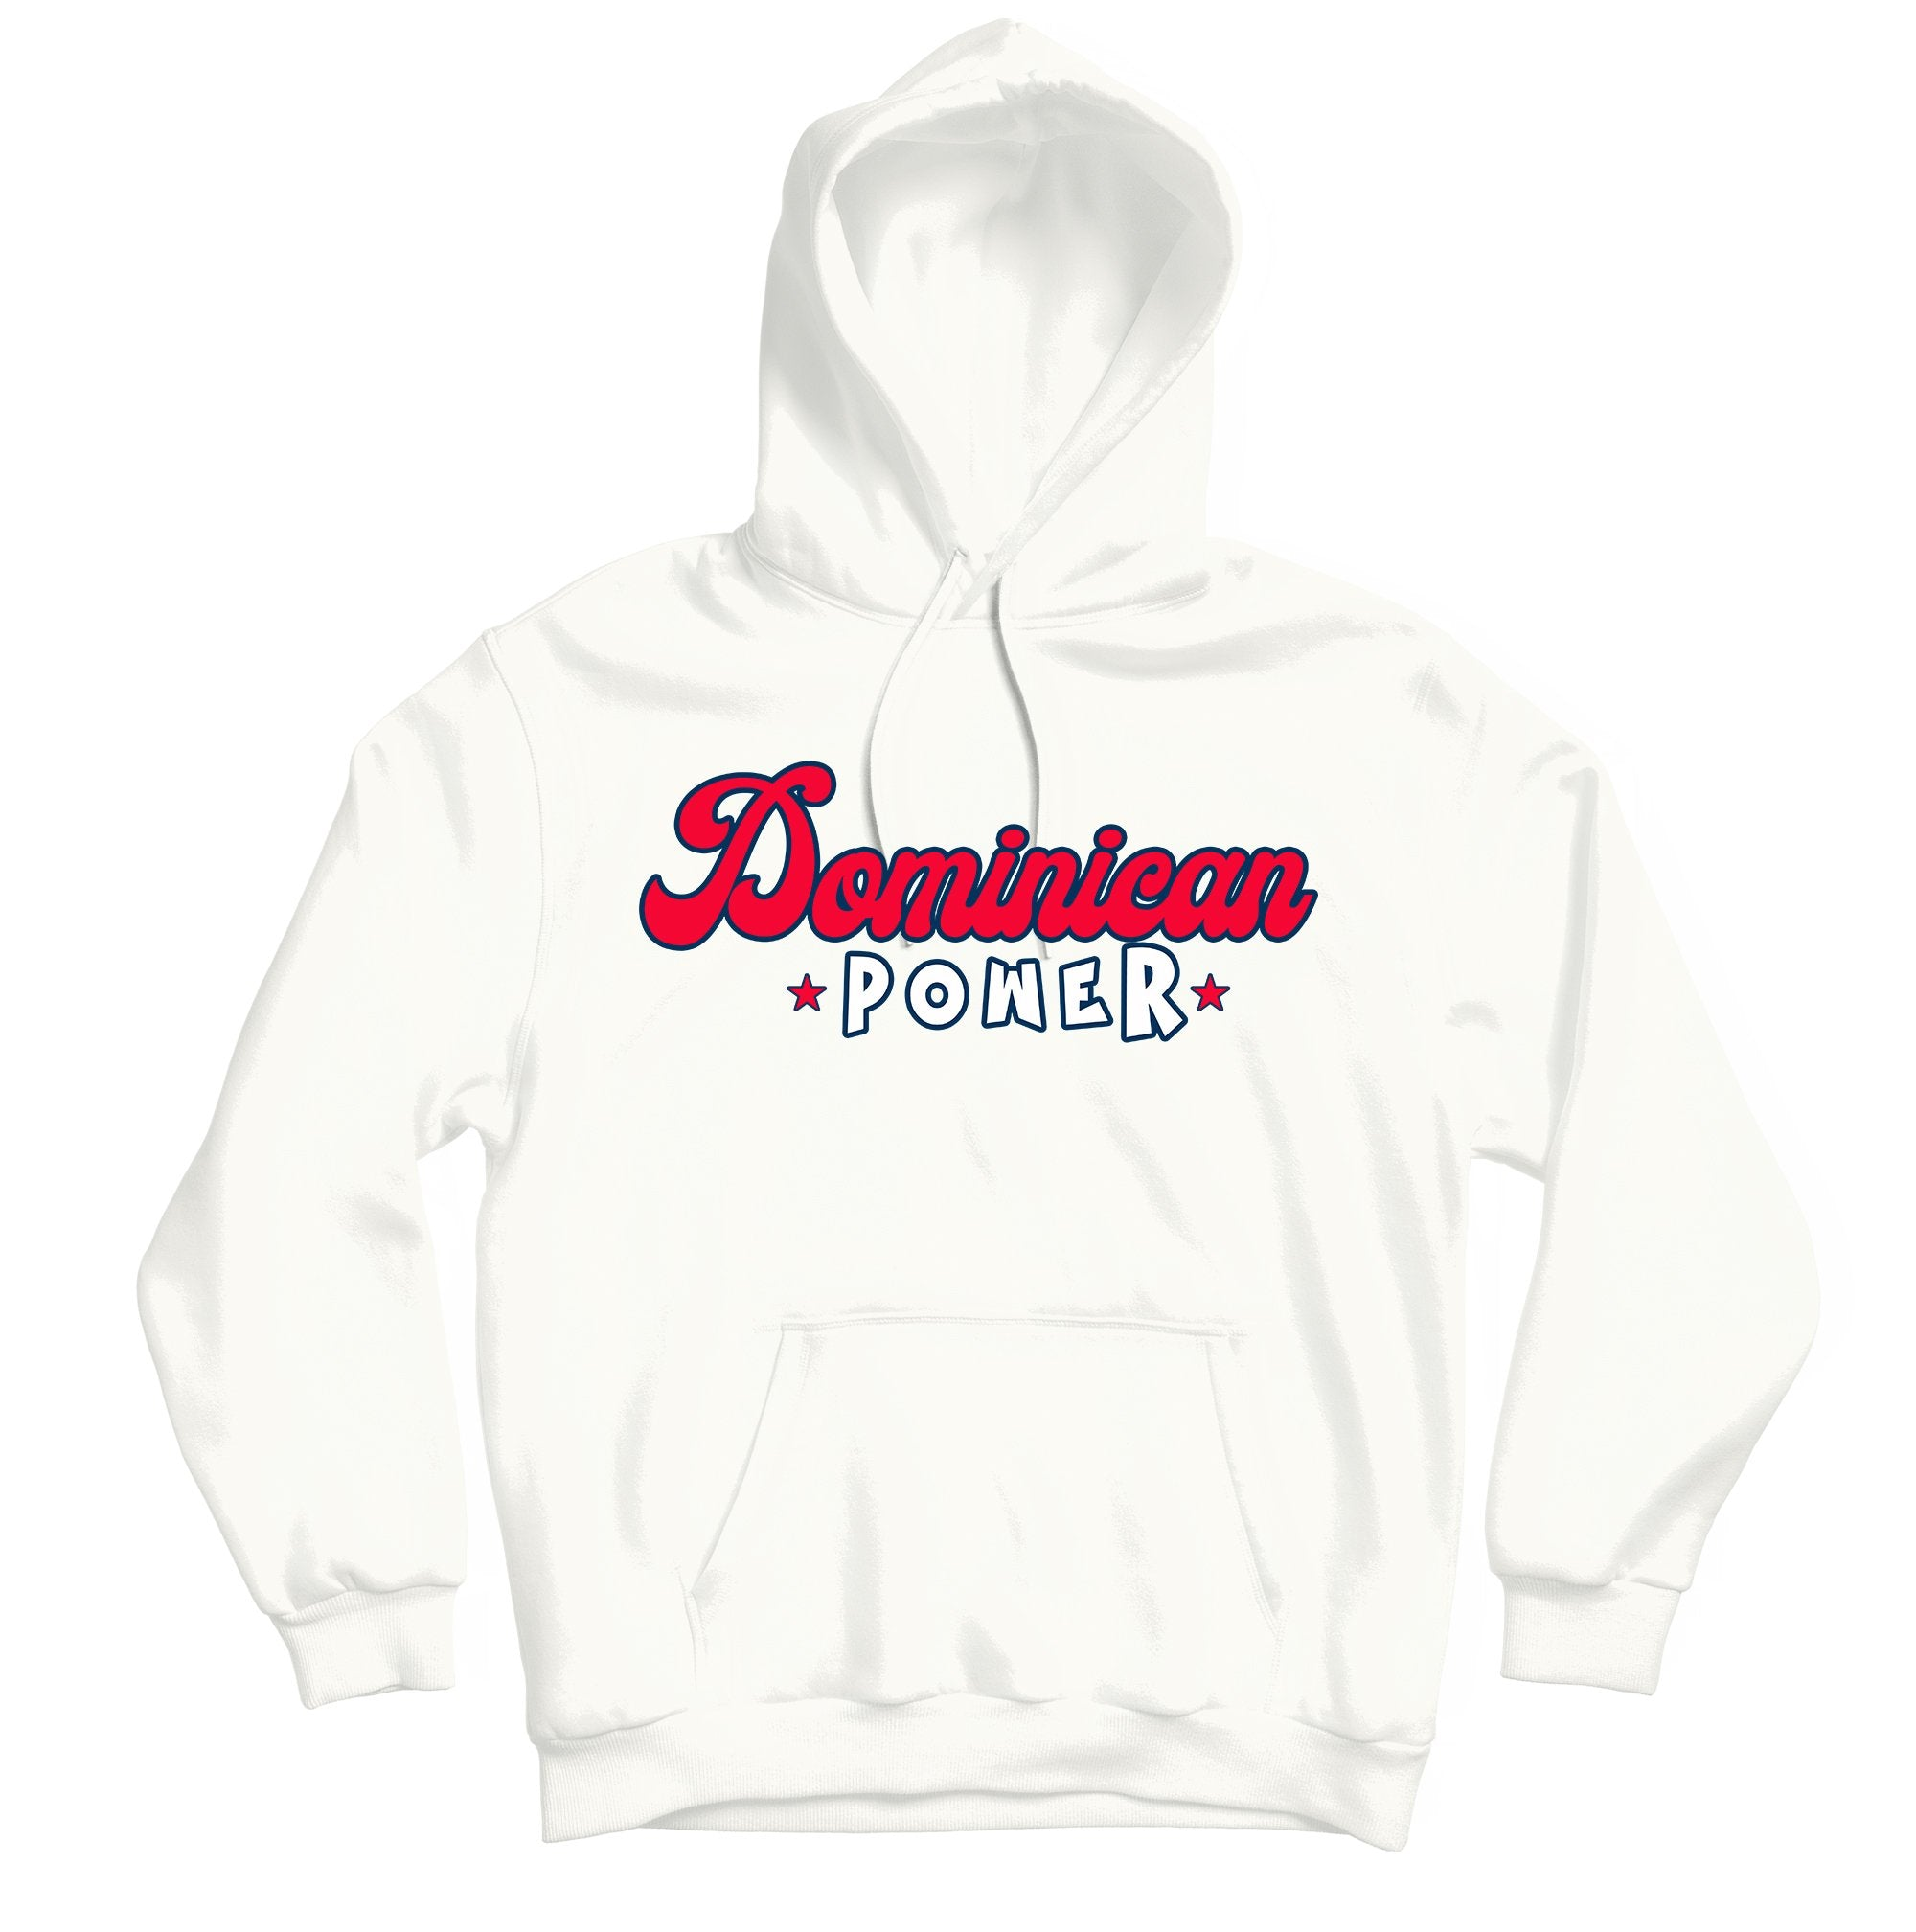 Dominican Power HOODIE - TOPS, TSS CUSTOM GRPHX, SNEAKER STUDIO, GOLDEN GILT, DESIGN BY TSS